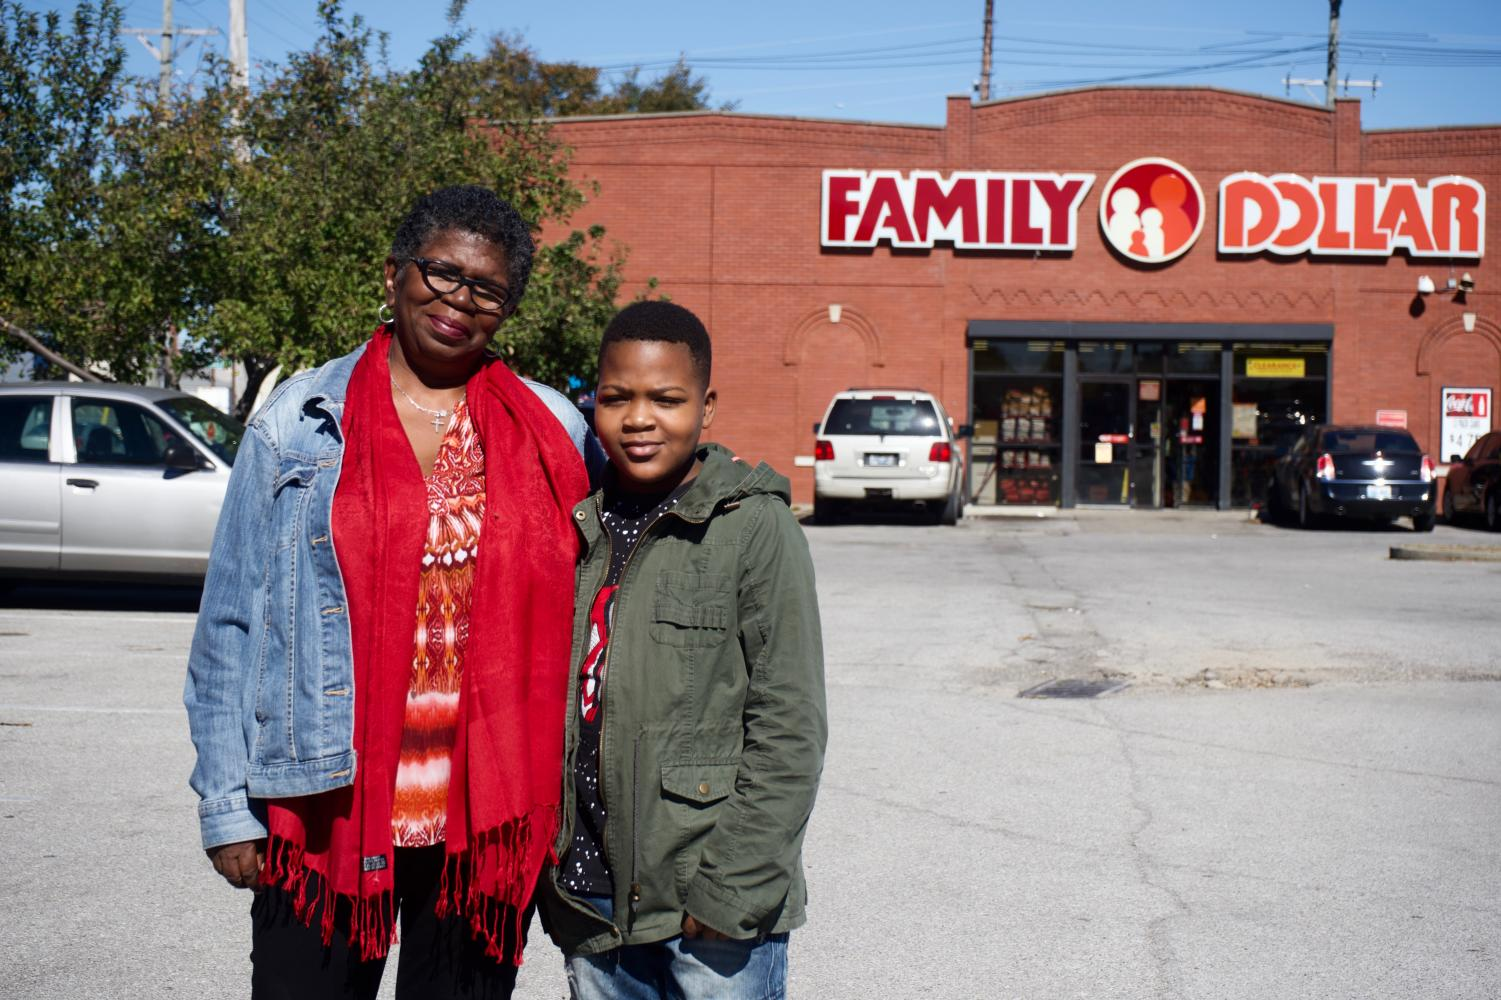 On Oct. 8, Jackie Floyd stands with her grandson,Shaun Cooksey, outside of a Family Dollar on 15th Street and Market Street that attempted to obtain a liquor license.